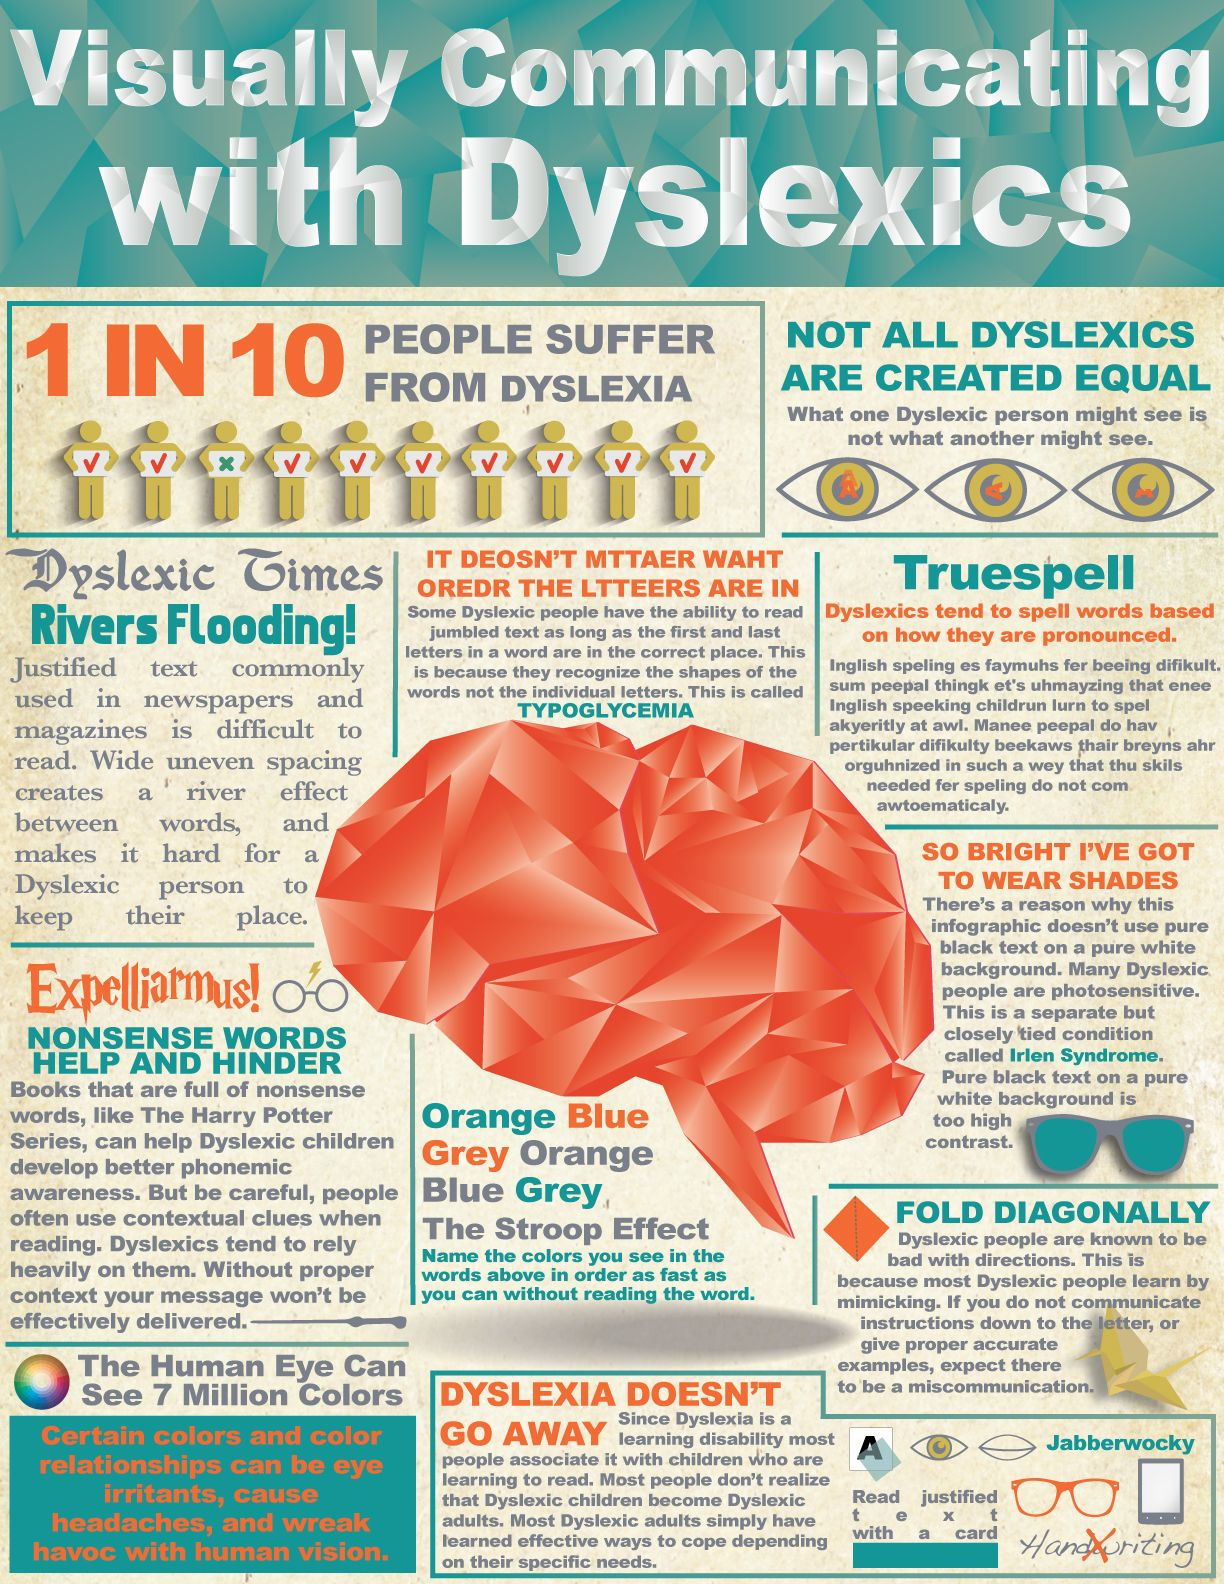 Visually Communicating With Dyslexics Infographic By Katy Souders